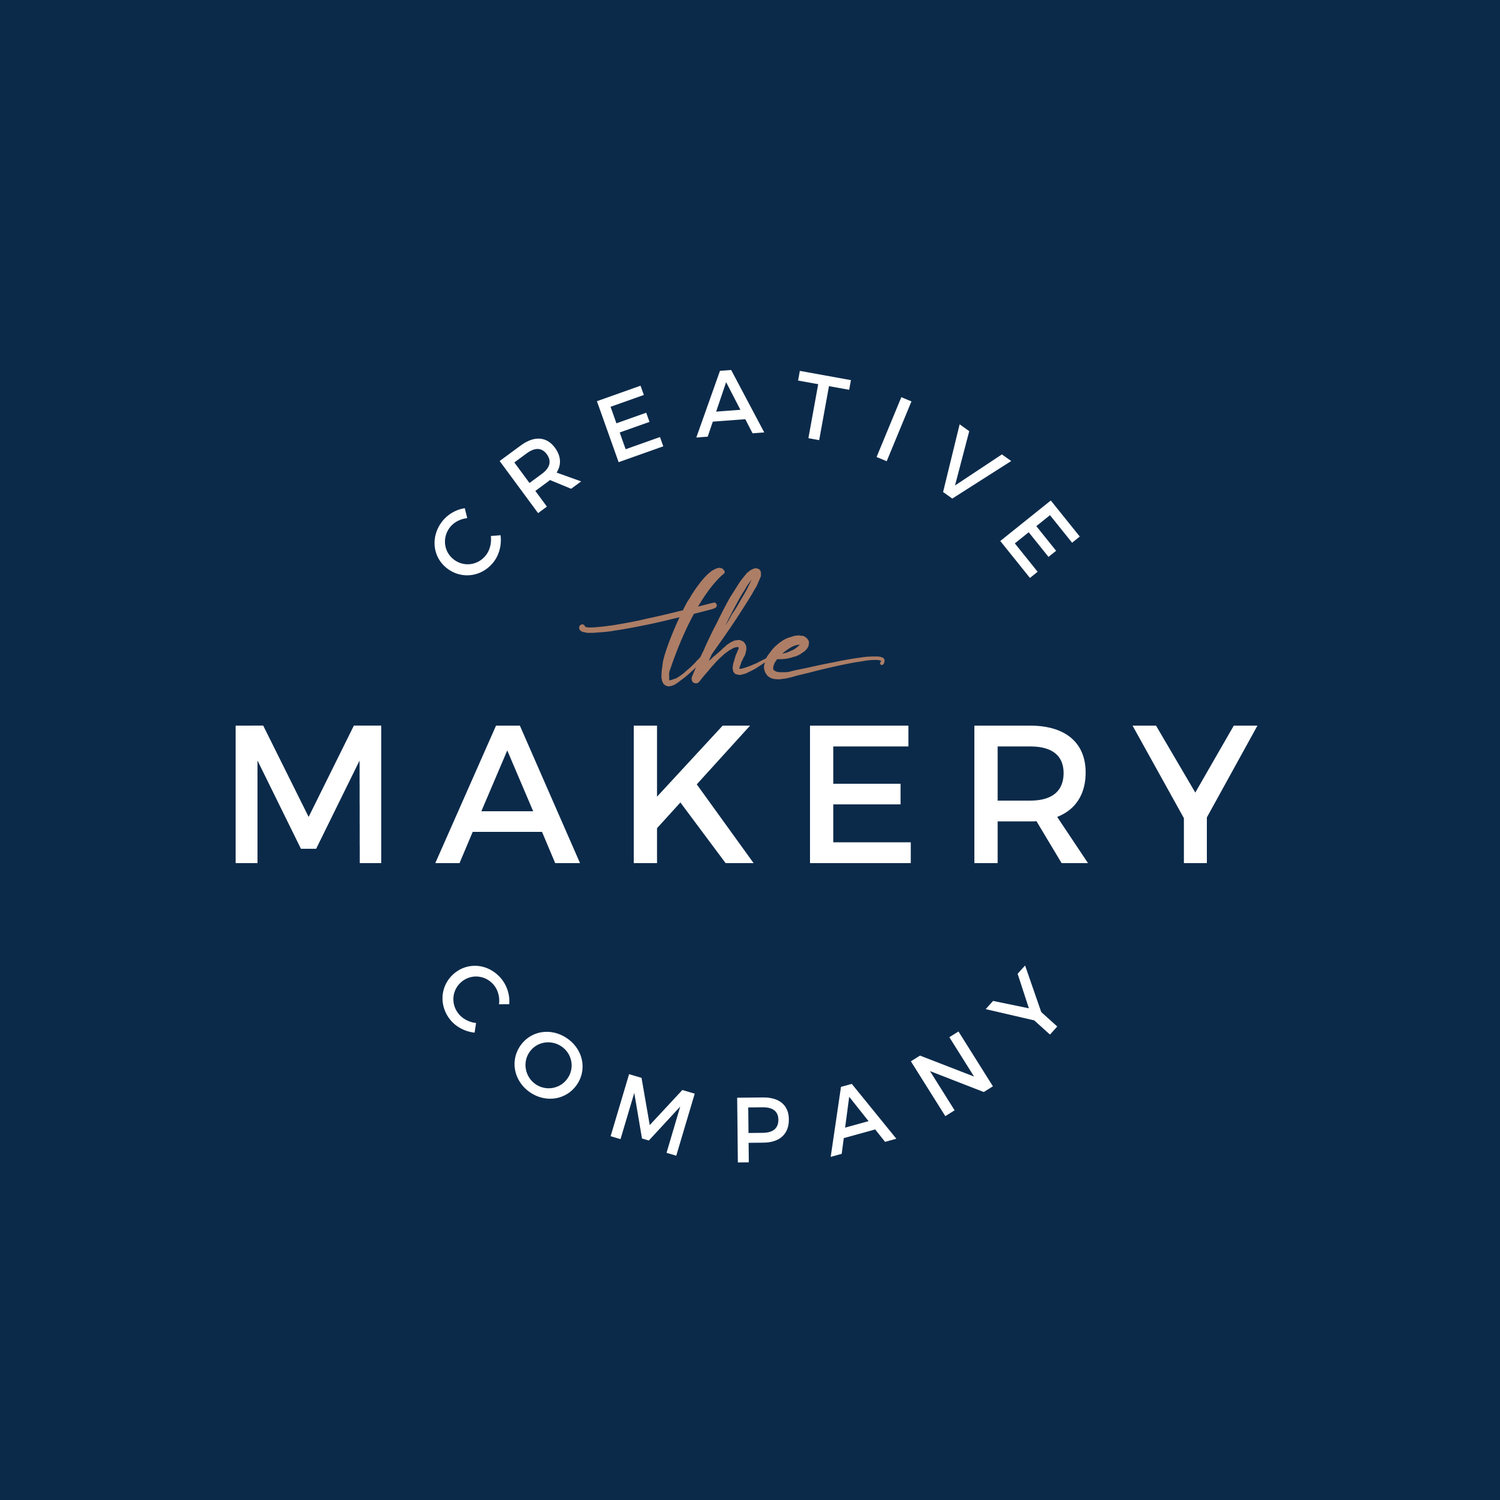 The Makery Creative Co.